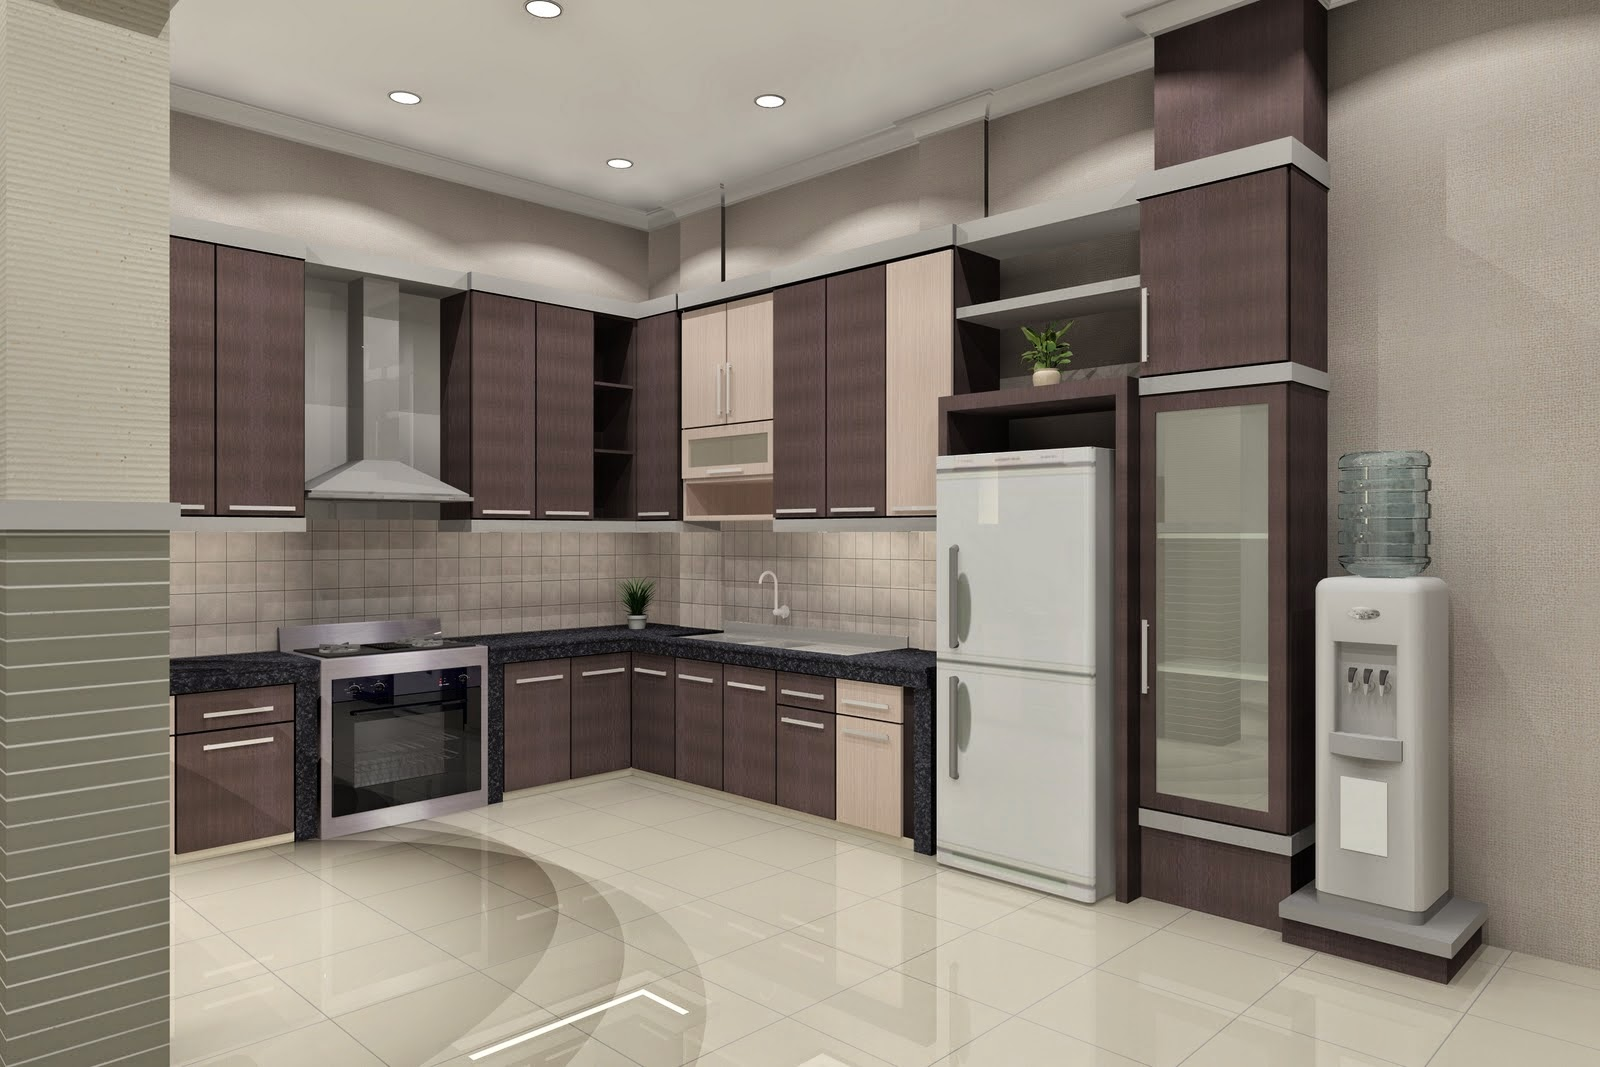 Simple minimalist kitchen design 2015 home design ideas 2015 for Rak kitchen set